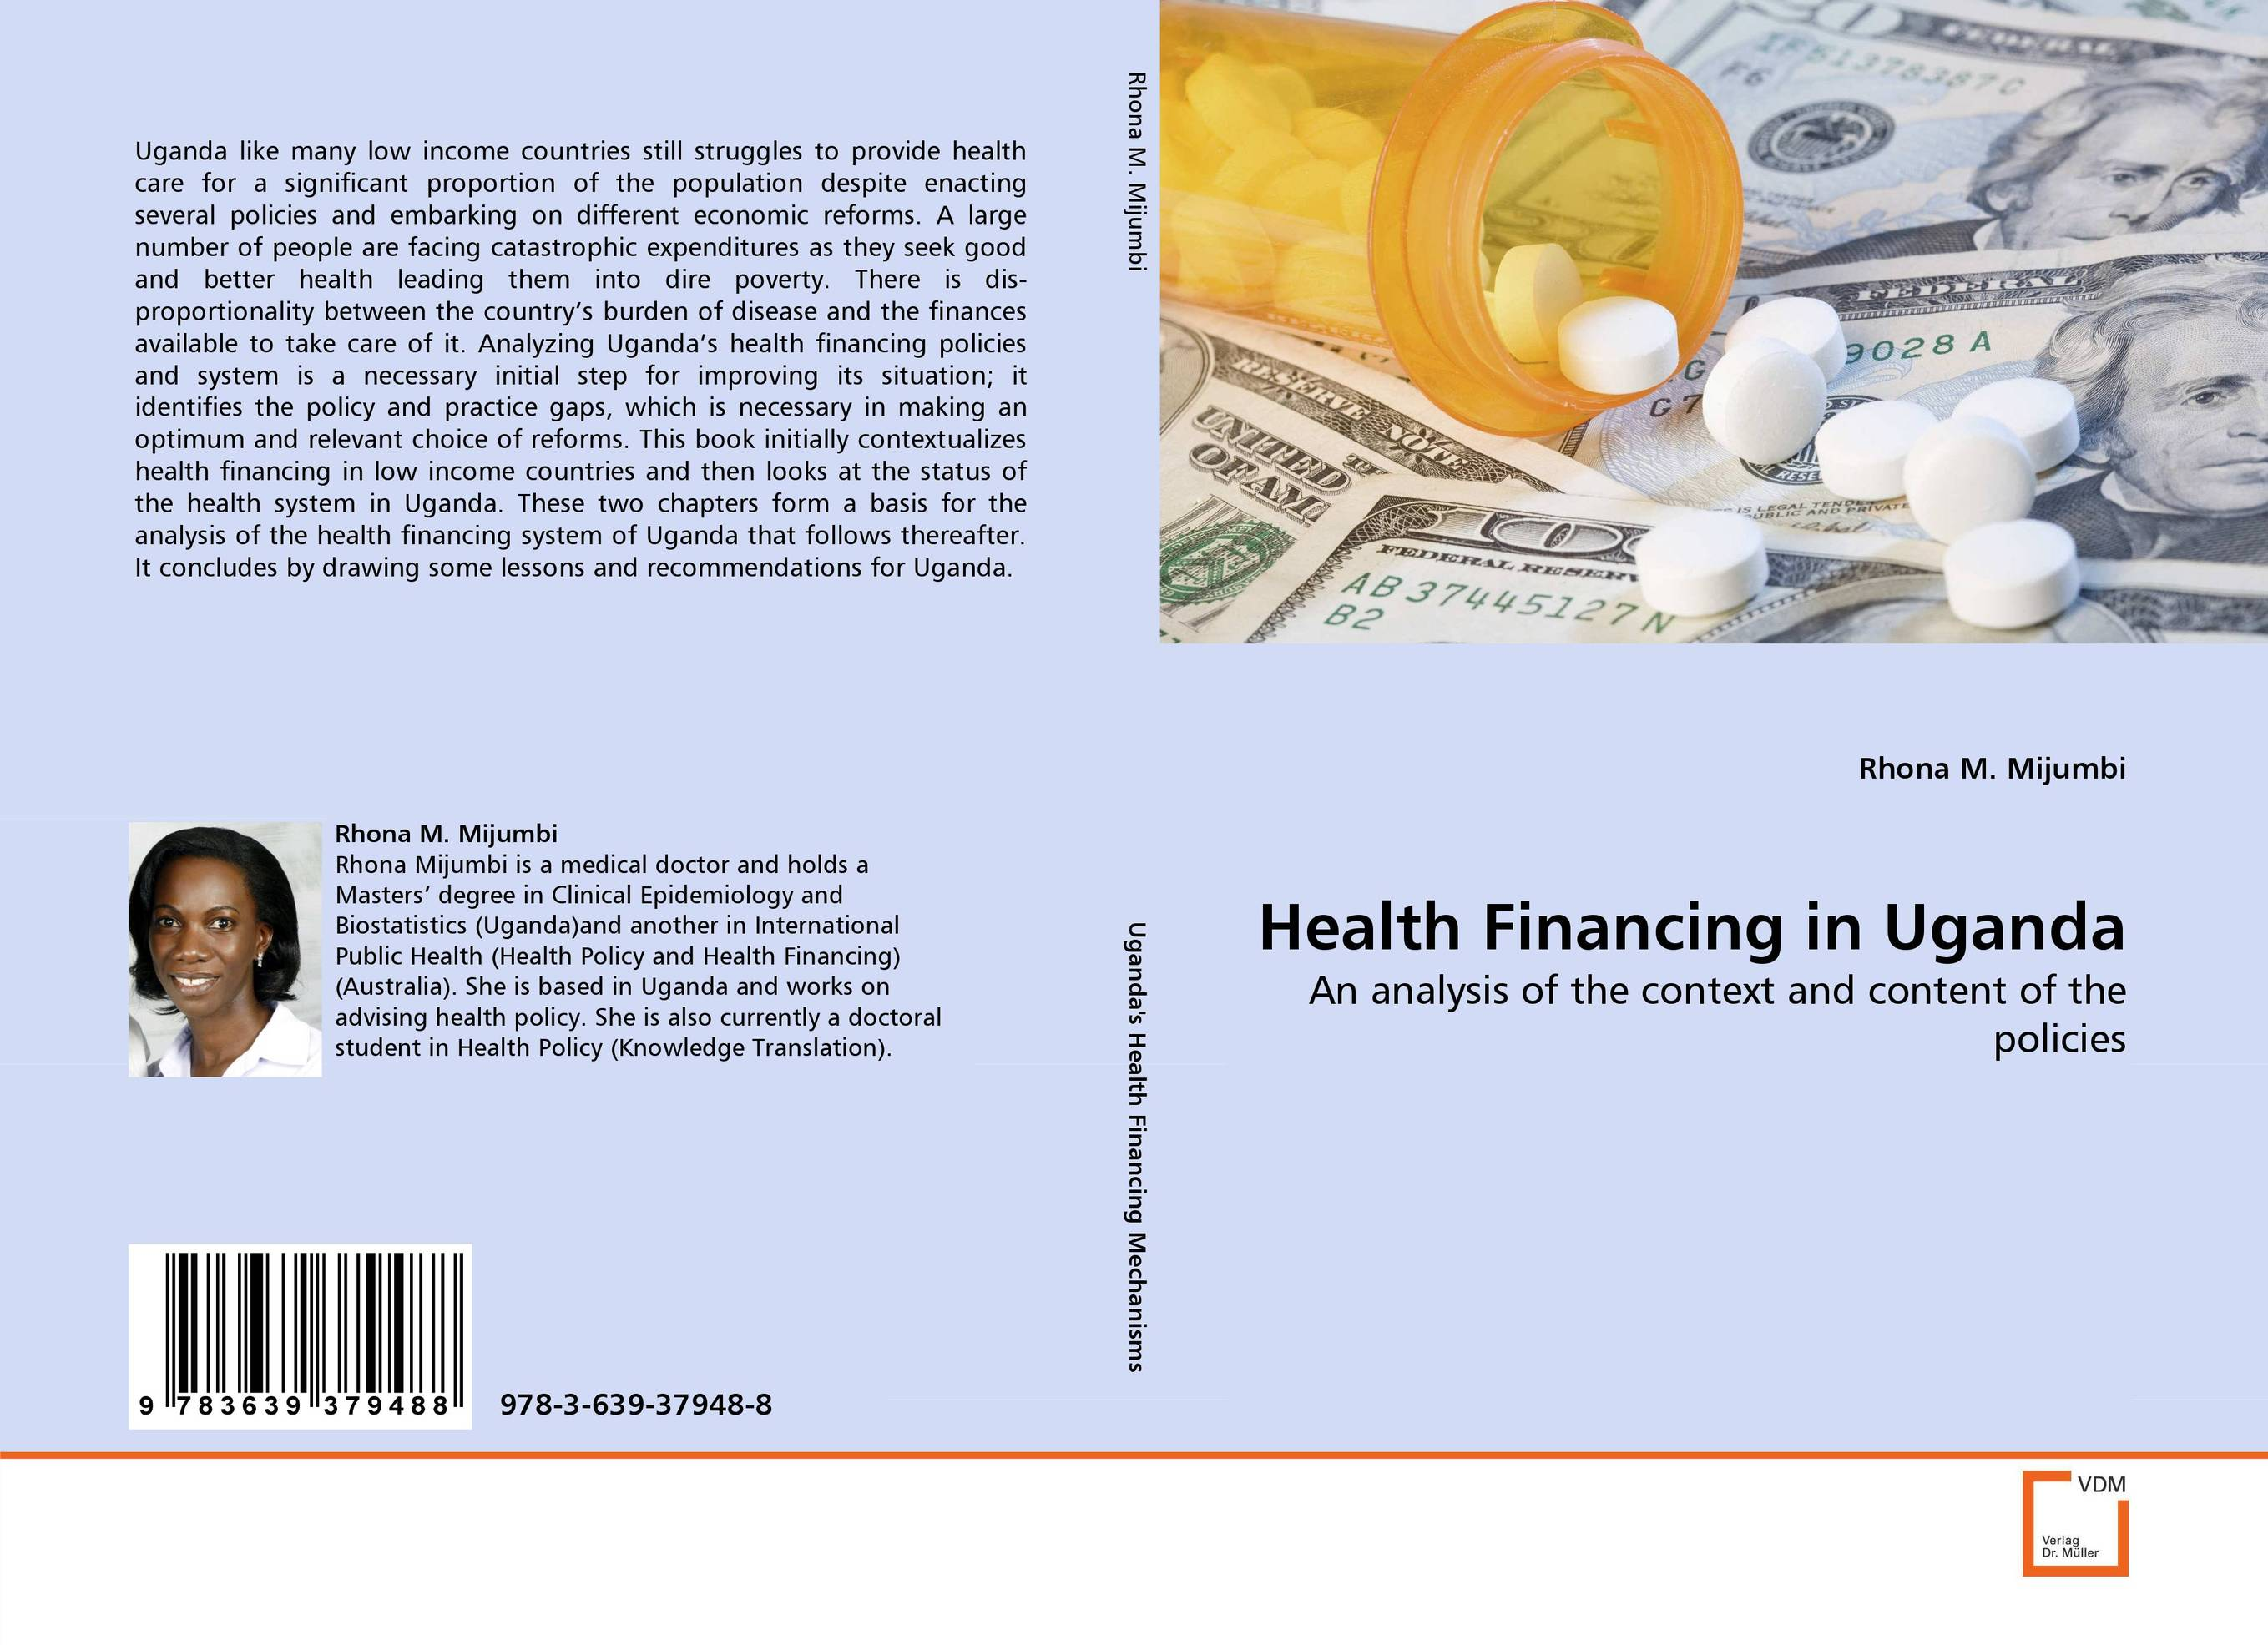 Health Financing in Uganda